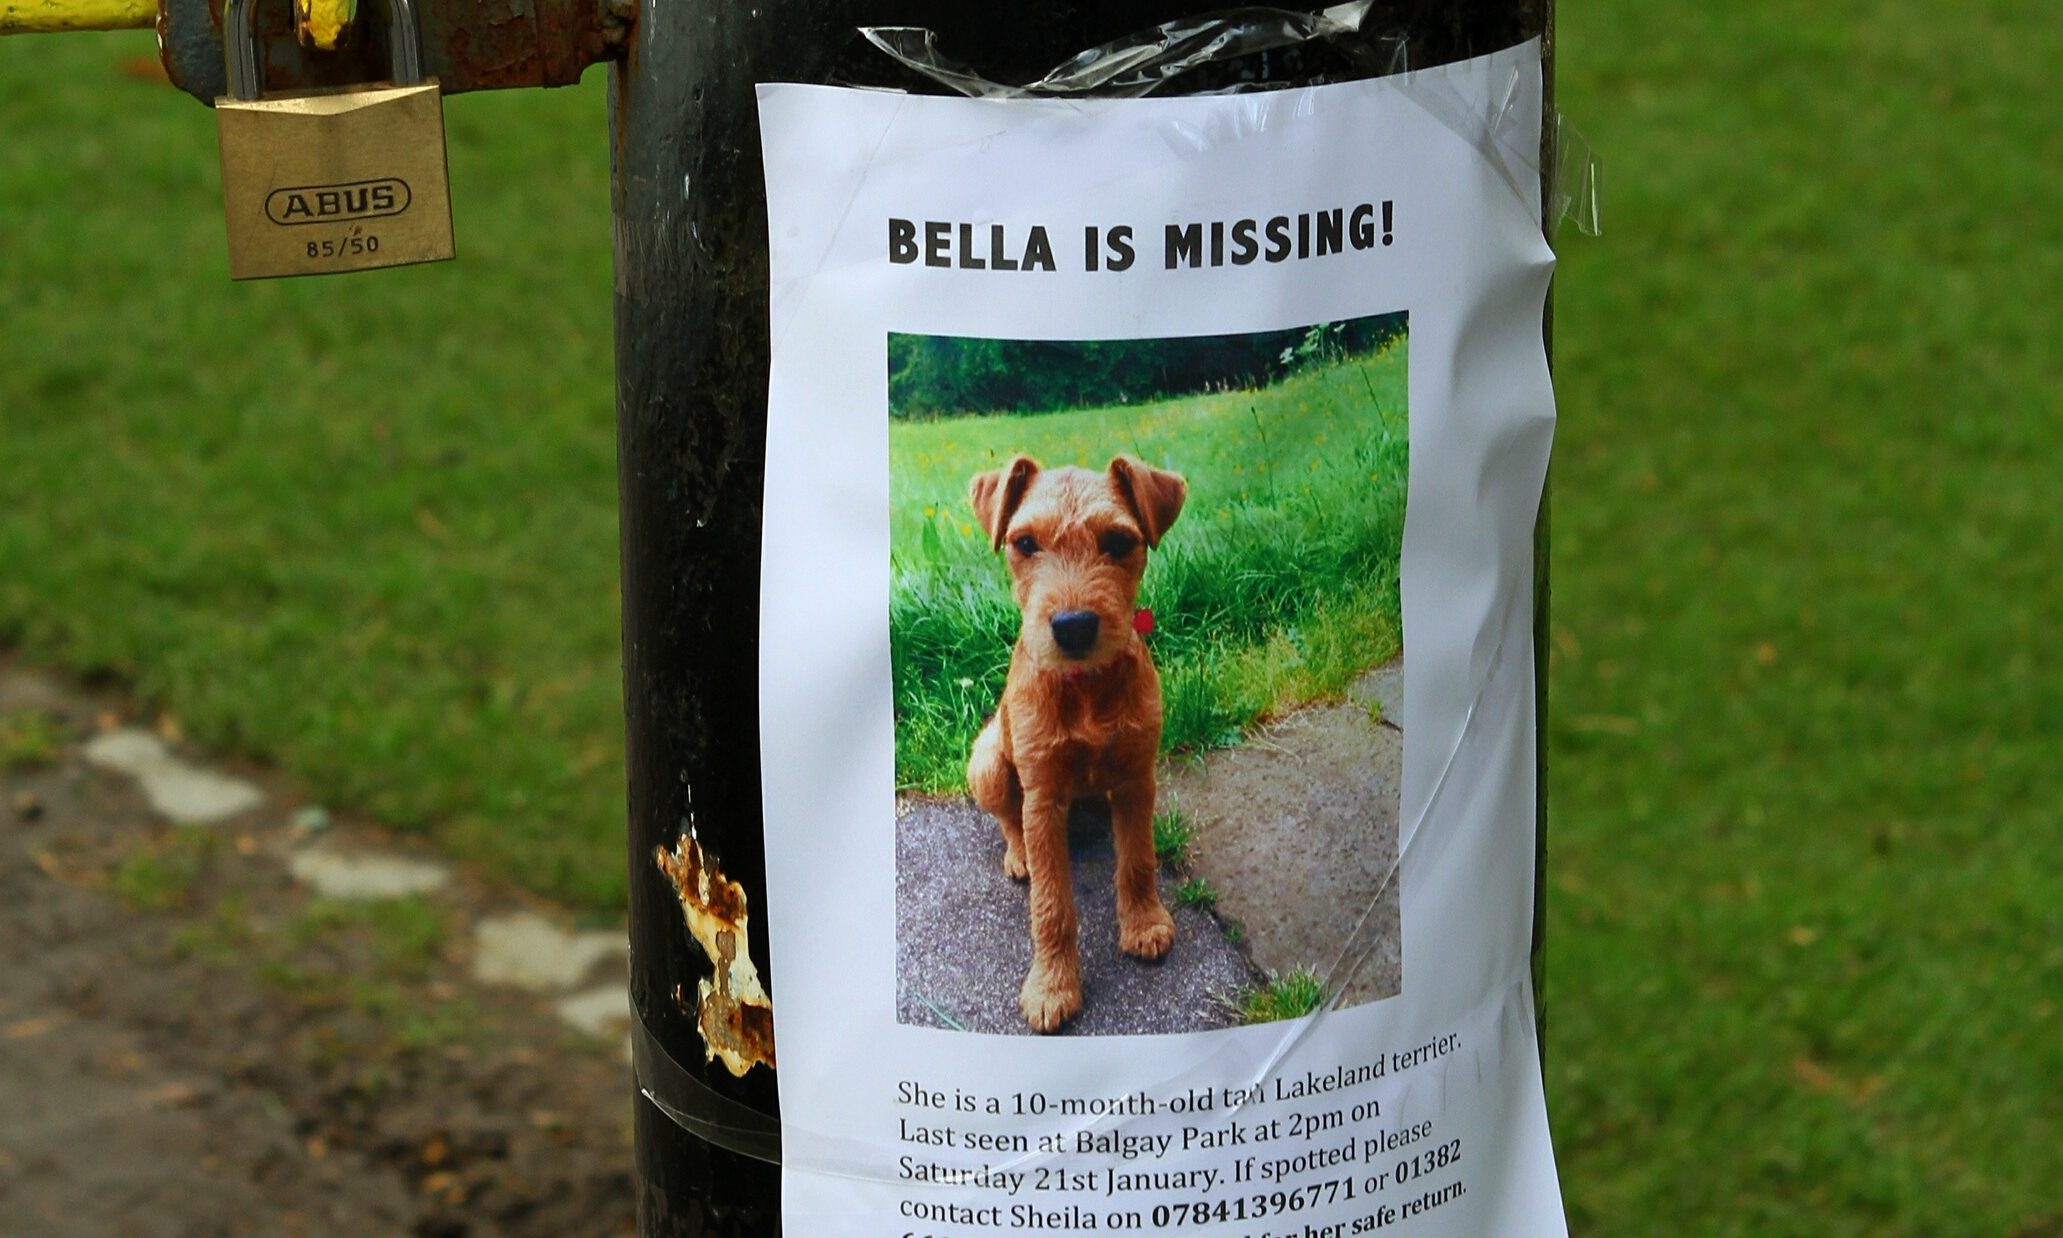 Credible sightings of Bella have been reported in the last 48 hours.